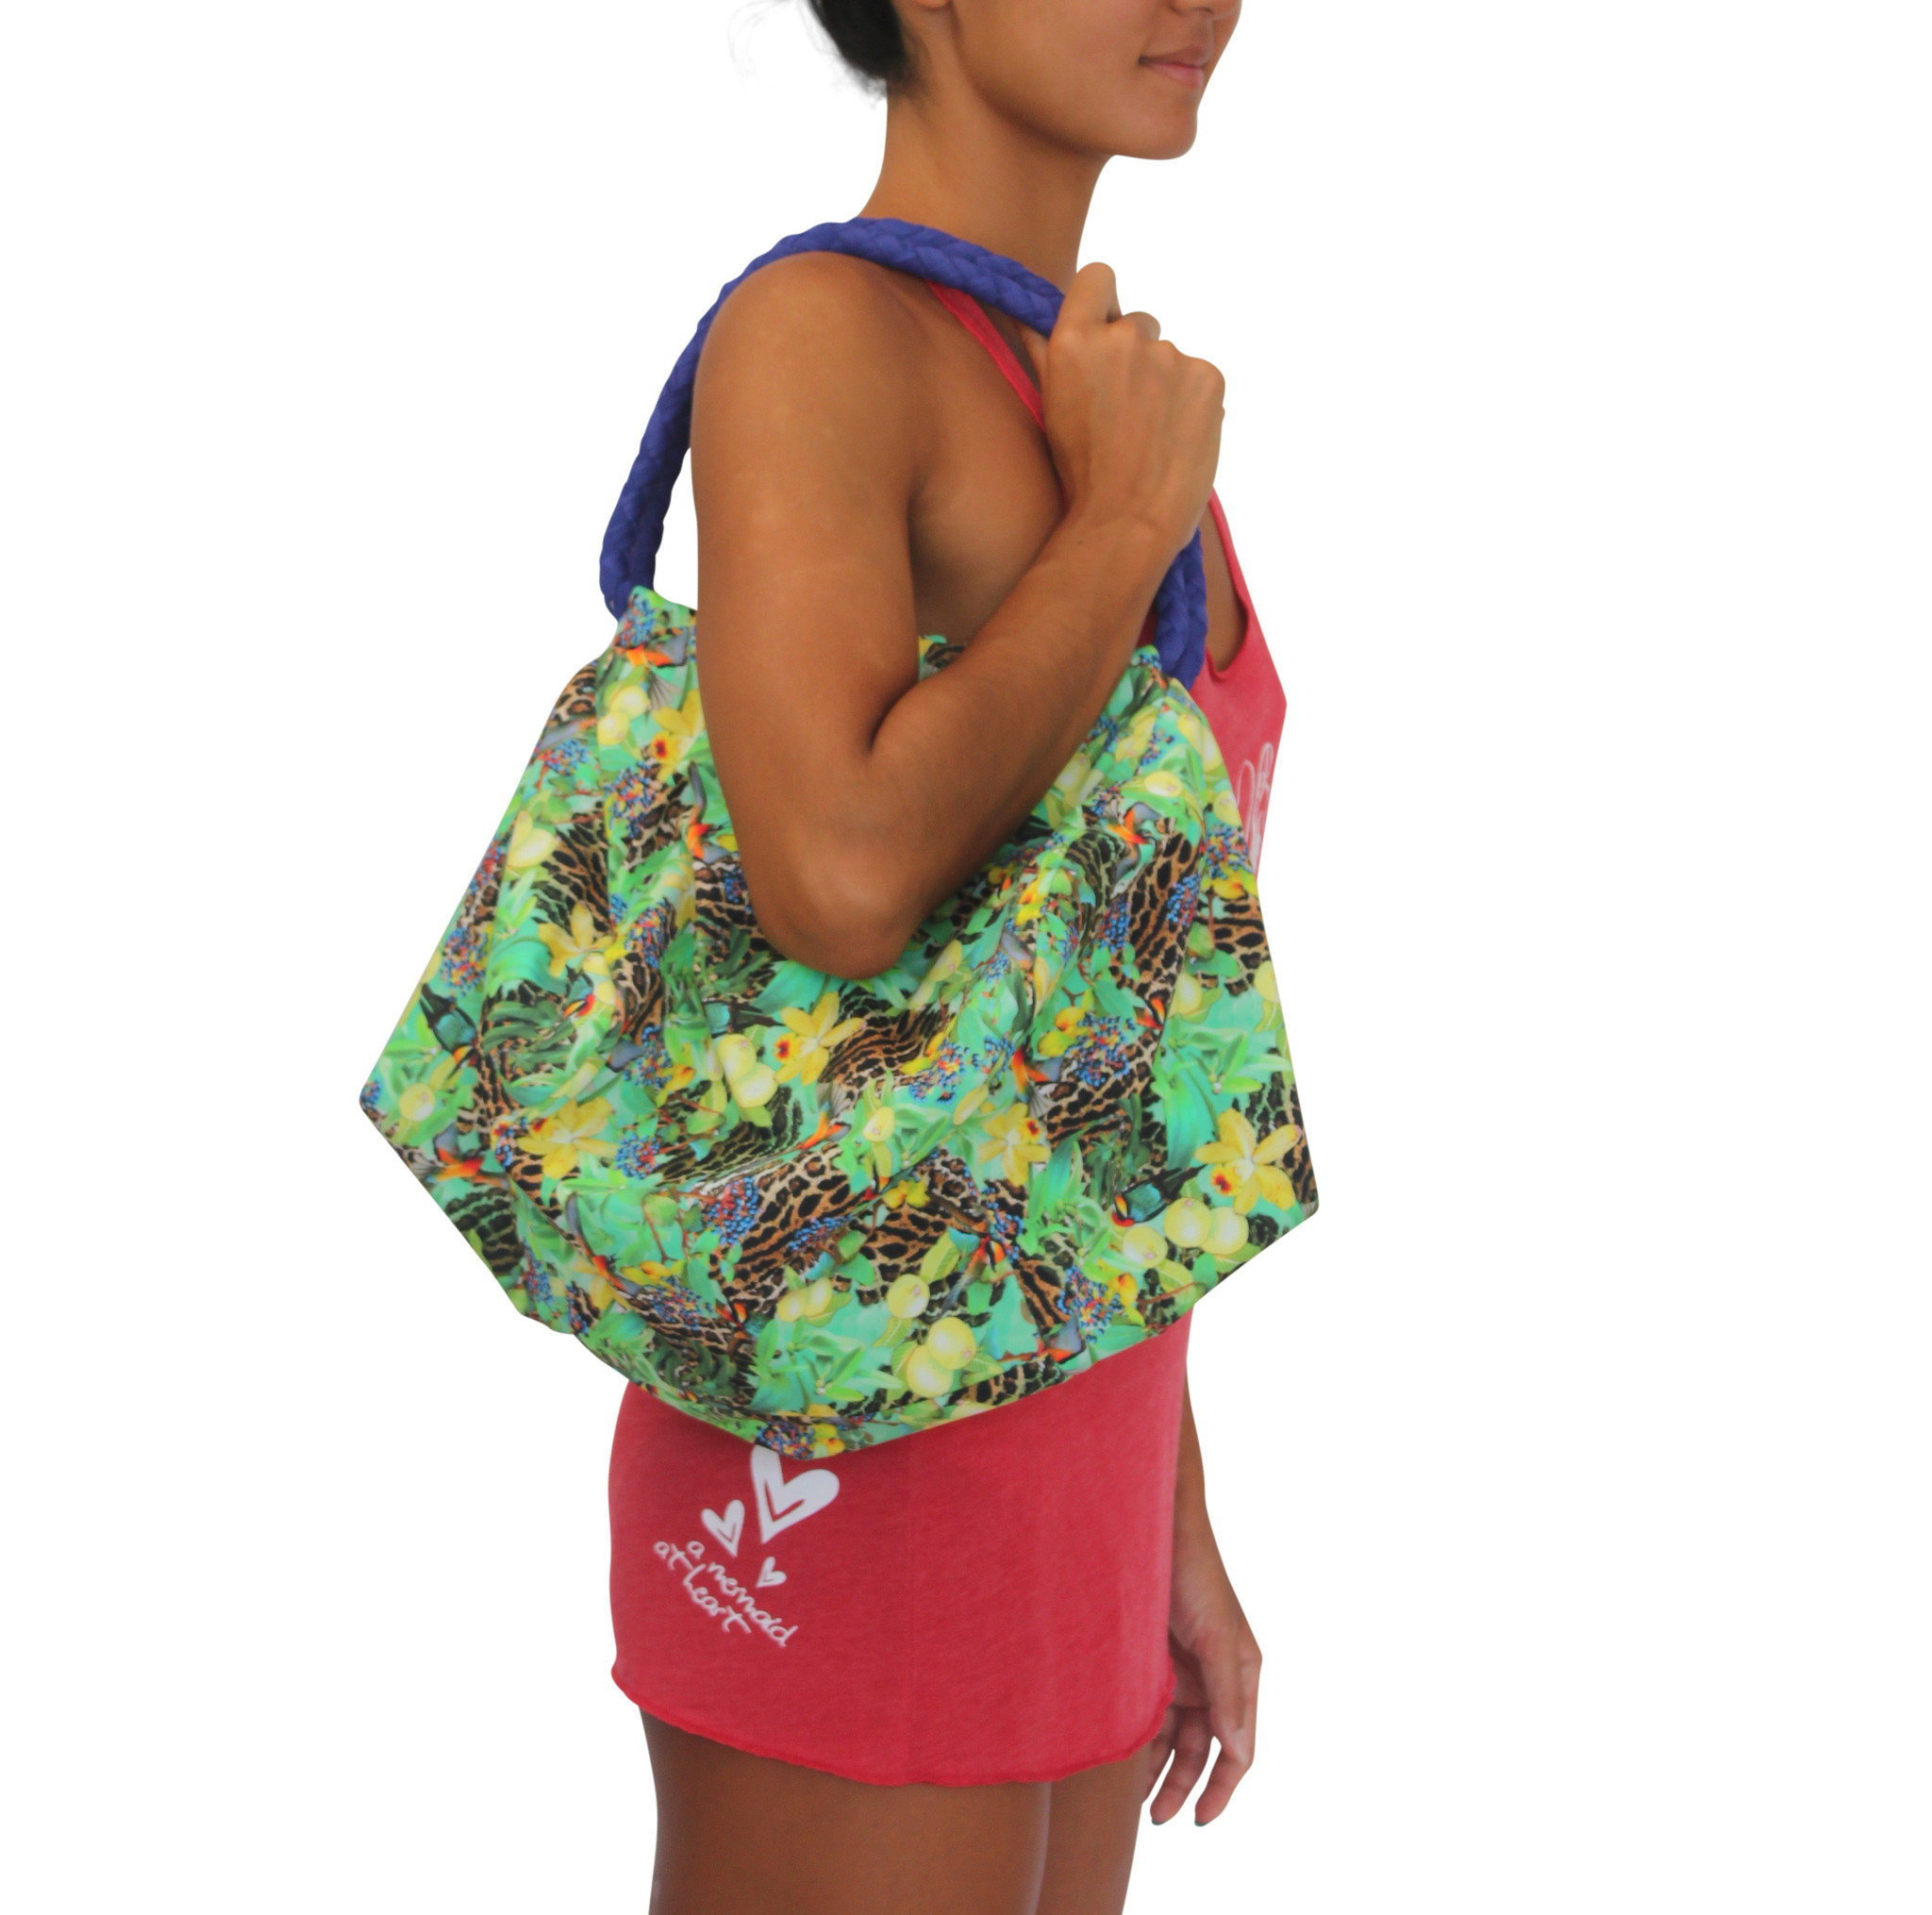 Pualani Large Beach Bag Amazon